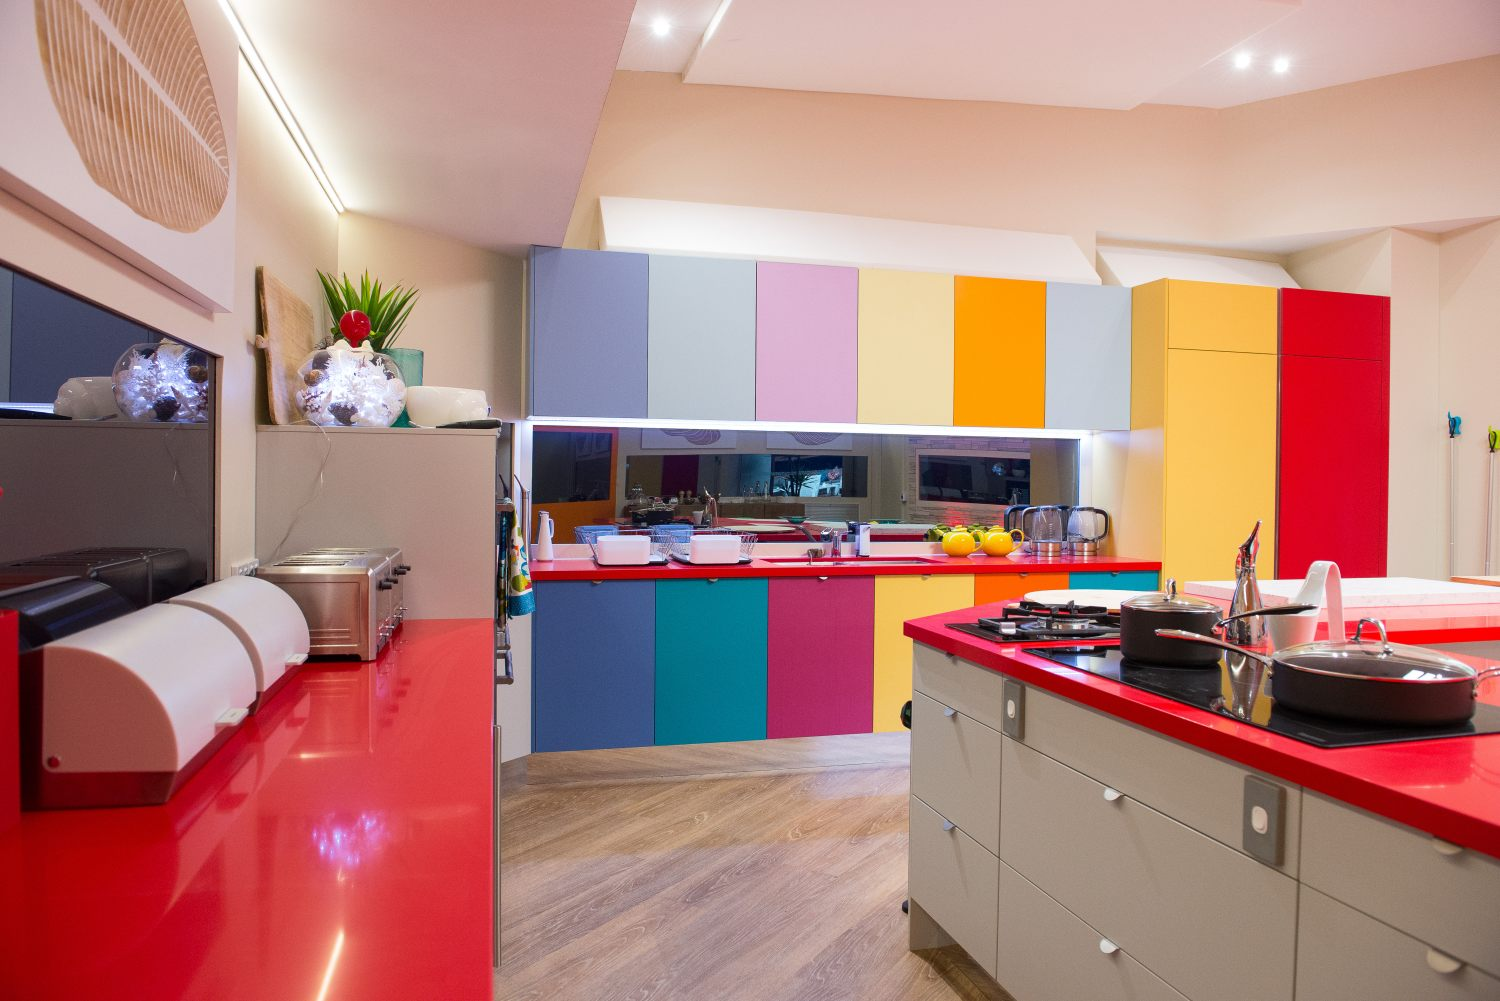 the latest colour trends in kitchen design the interiors addict the big brother house kitchen 2013